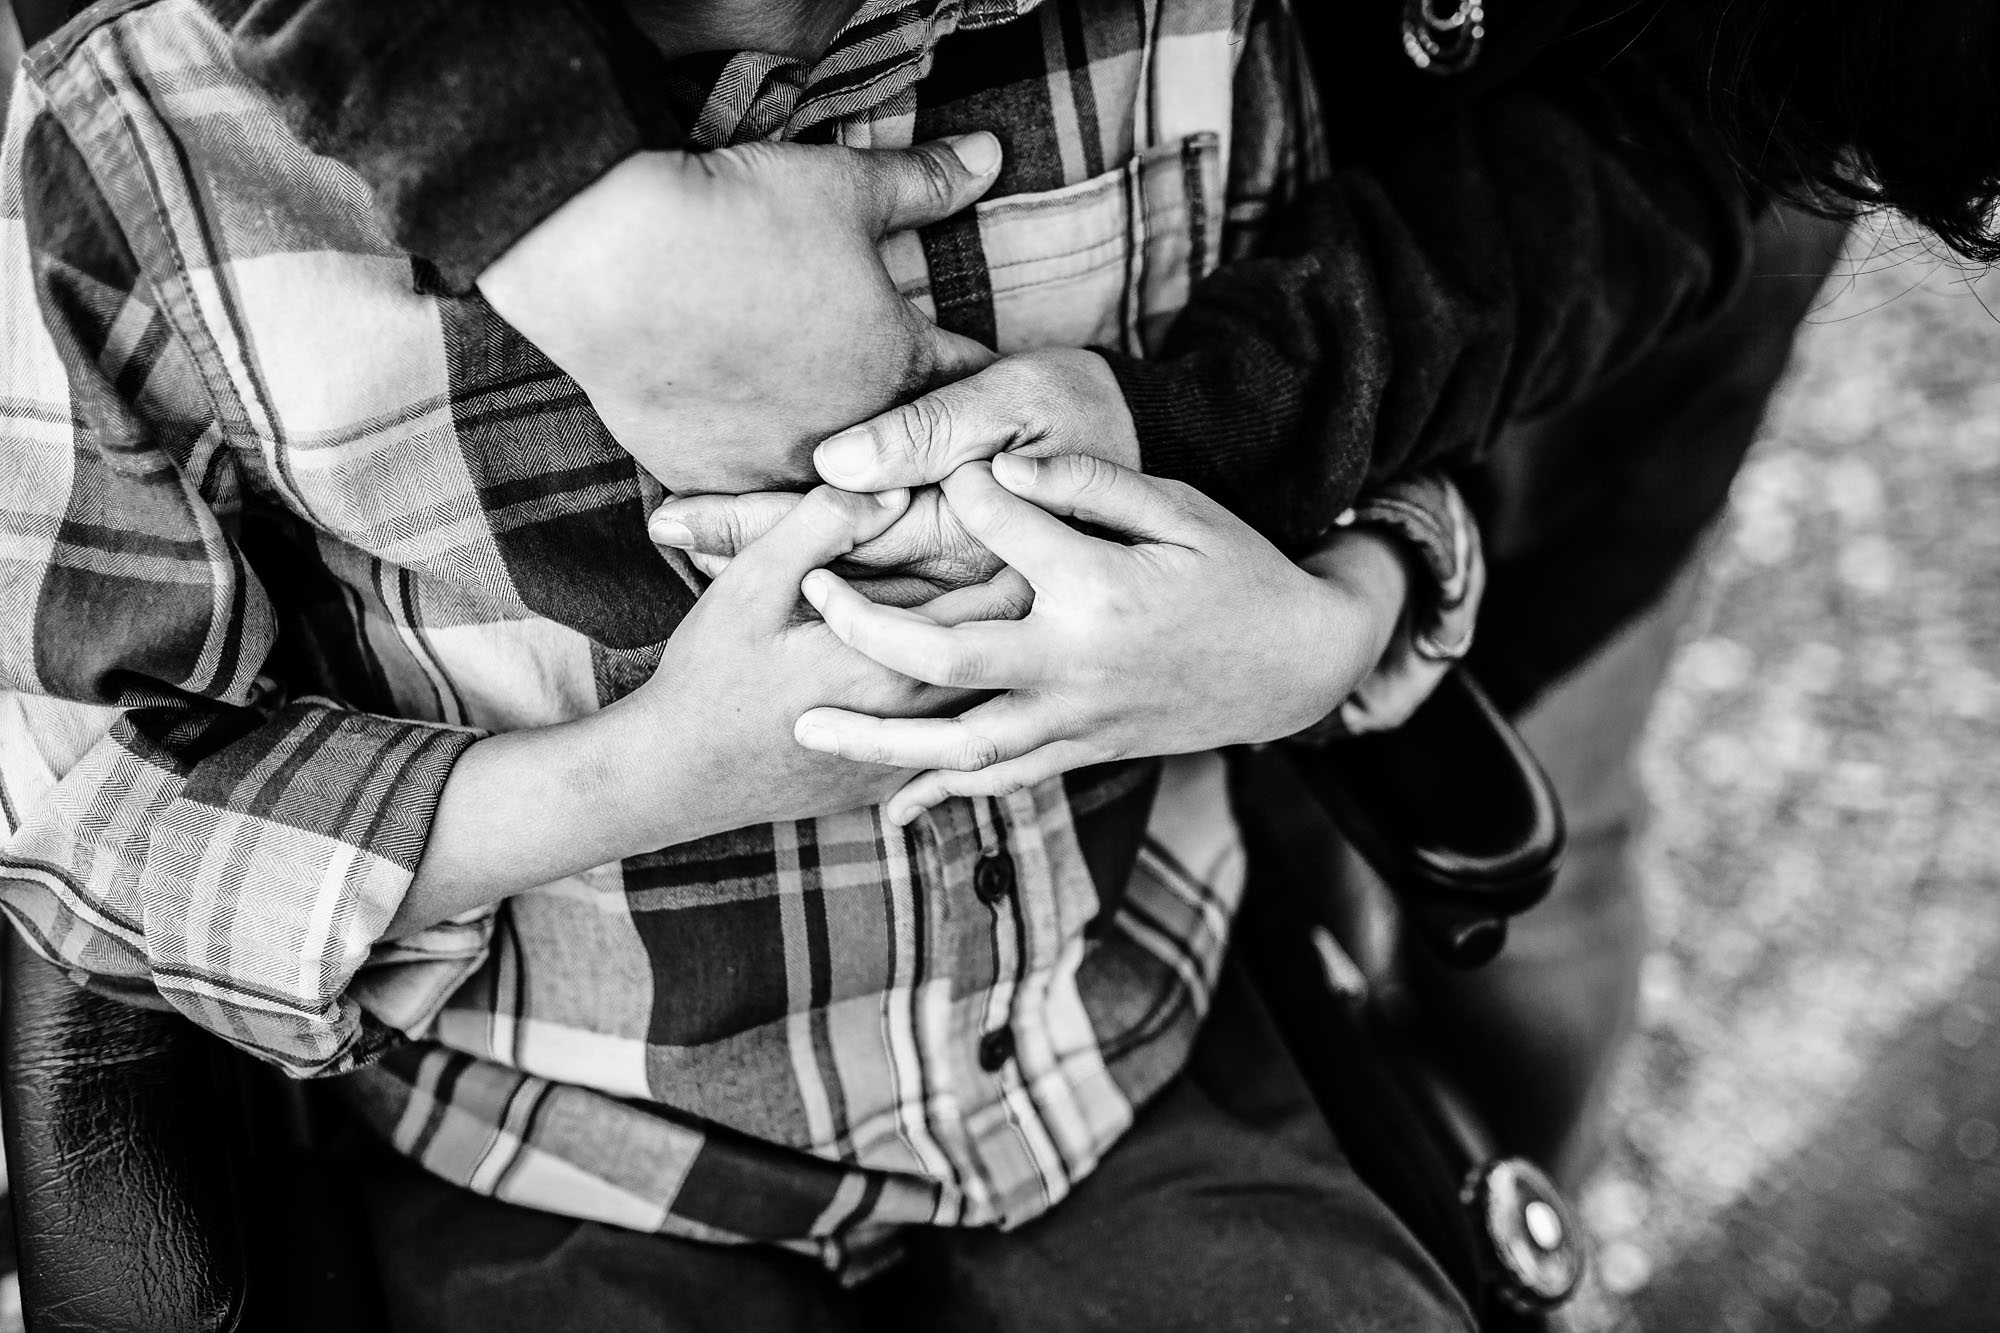 A mother and son grasp hands in a detail black and white photo taken by Amy Wright, a photographer based out of Roseville, California.